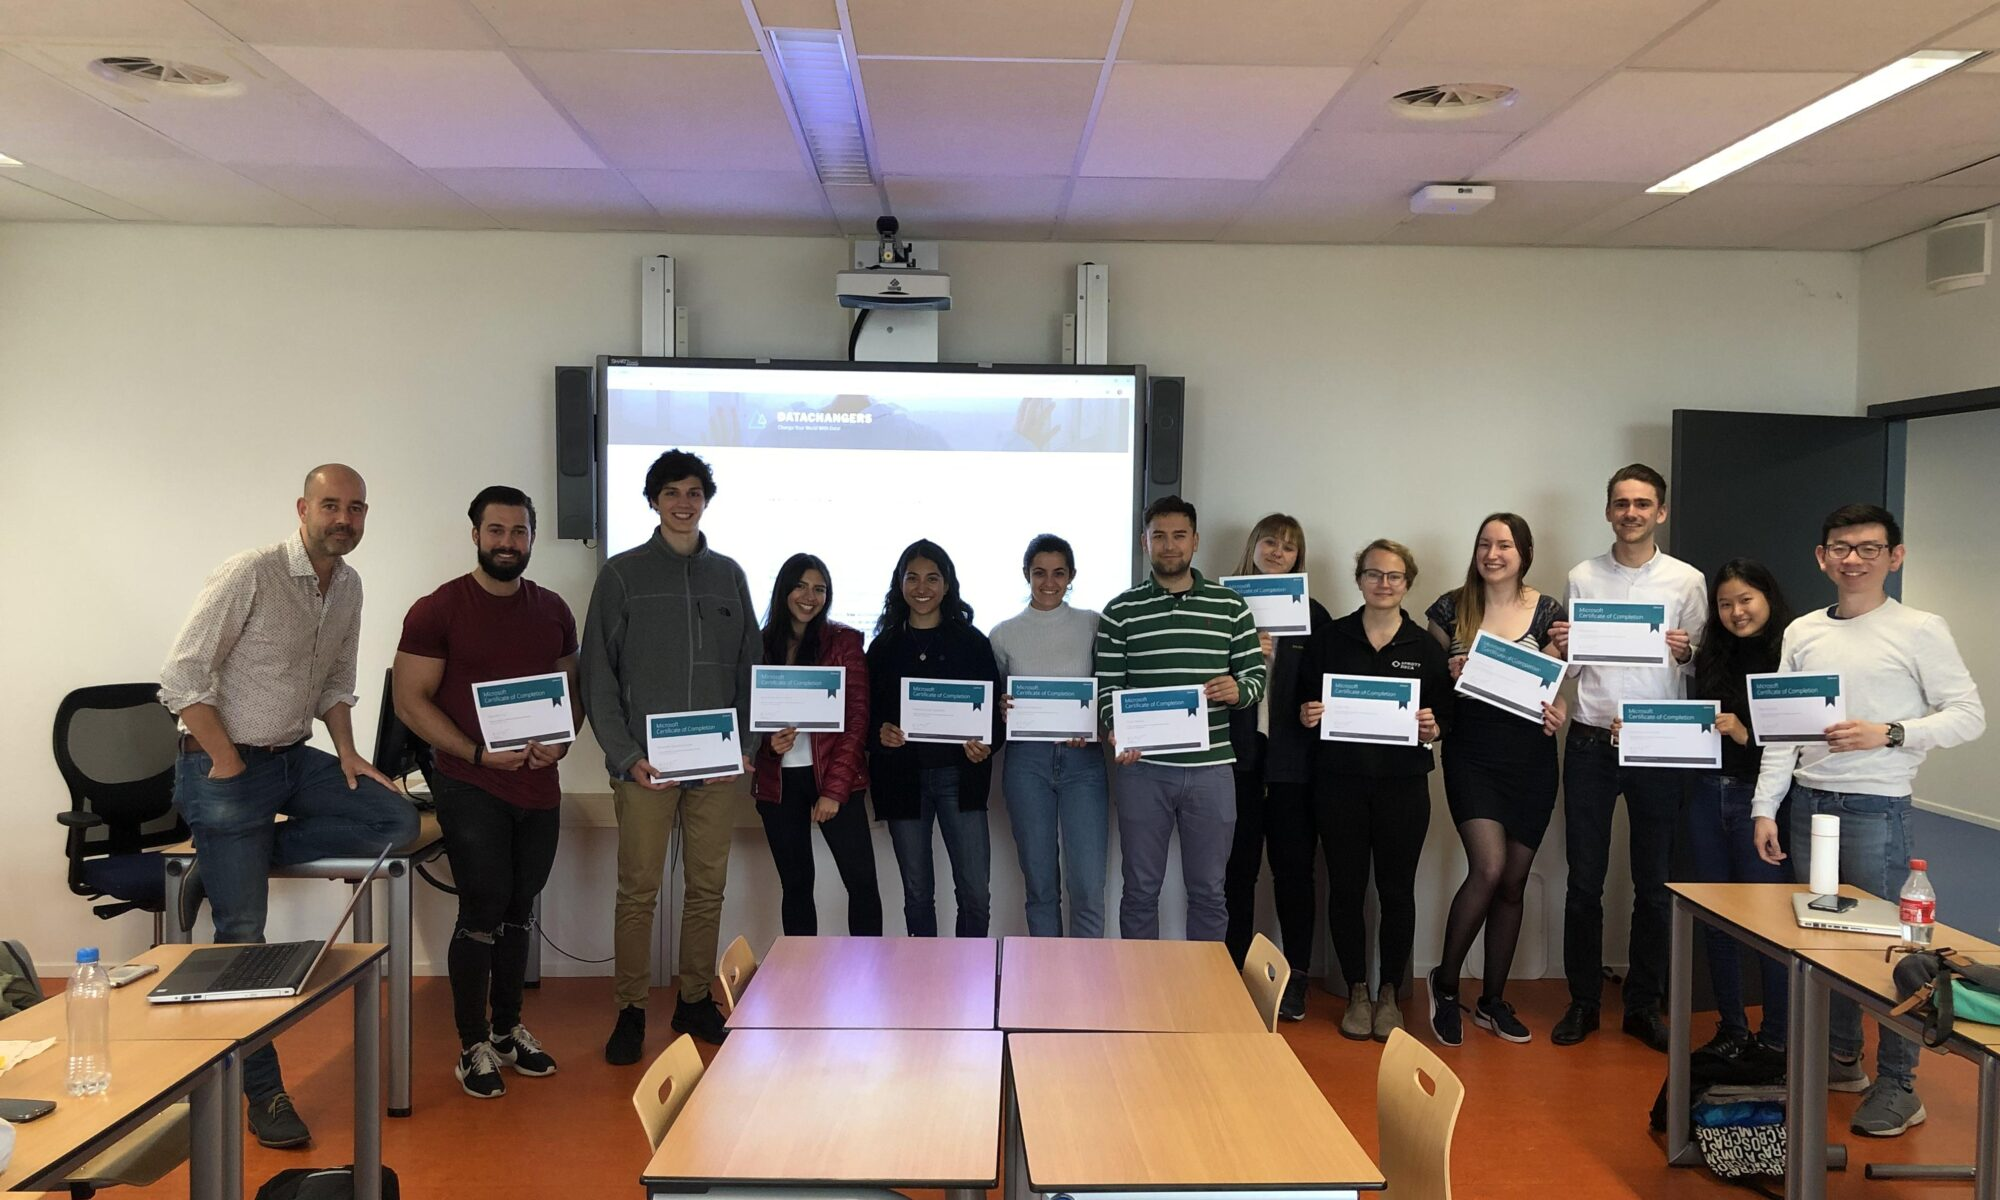 hogeschool rotterdam students introduction to data science course